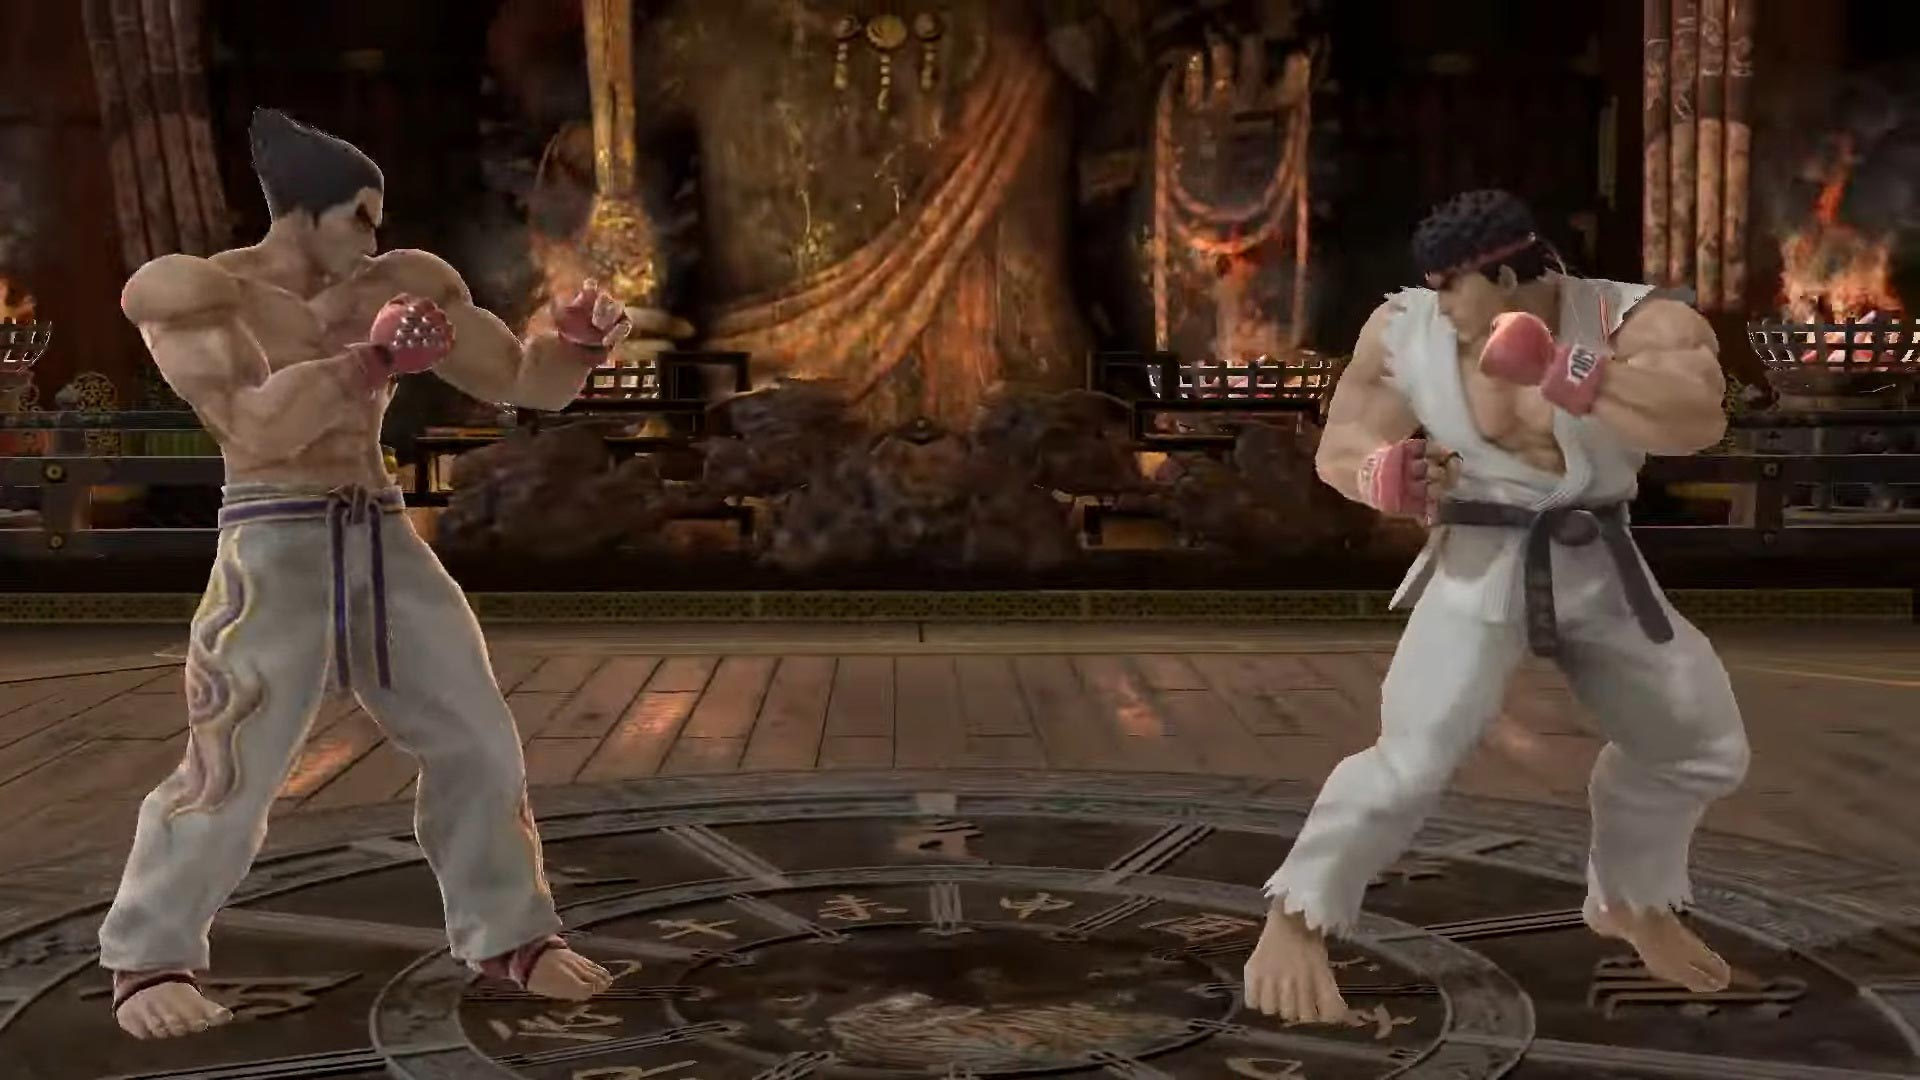 Kazuya in Super Smash Bros. Ultimate 3 out of 6 image gallery